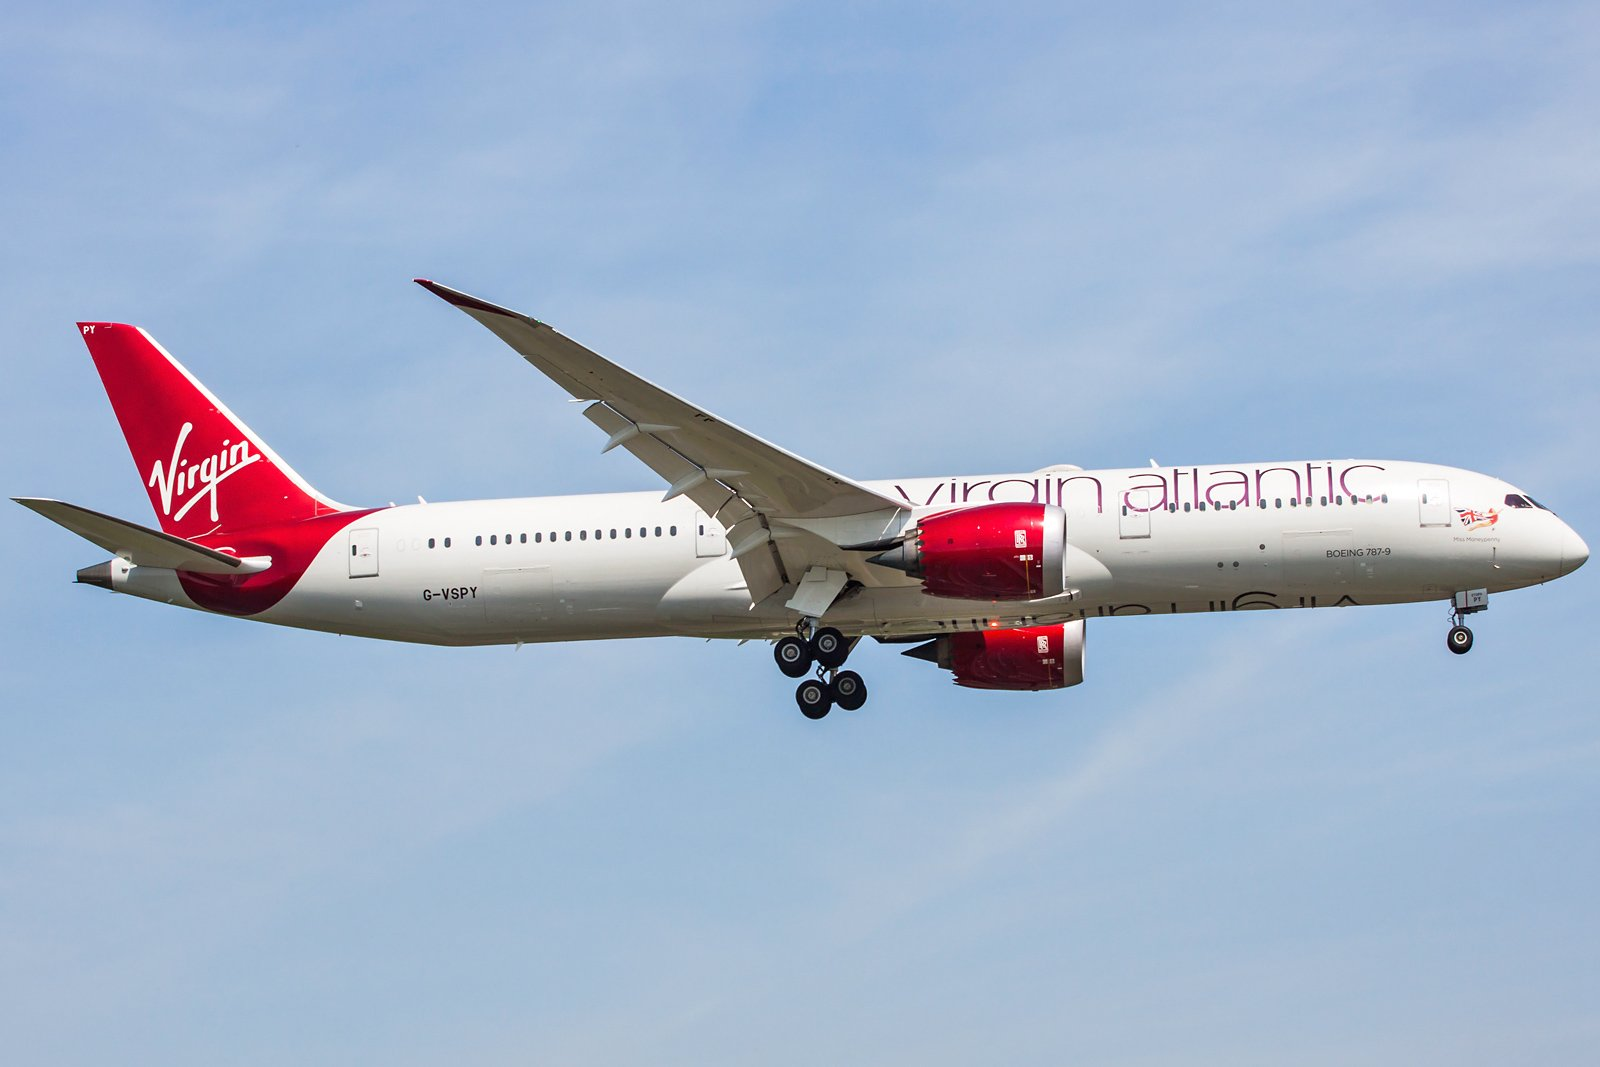 Virgin Atlantic Airways Boeing 787-9 Dreamliner G-VSPY